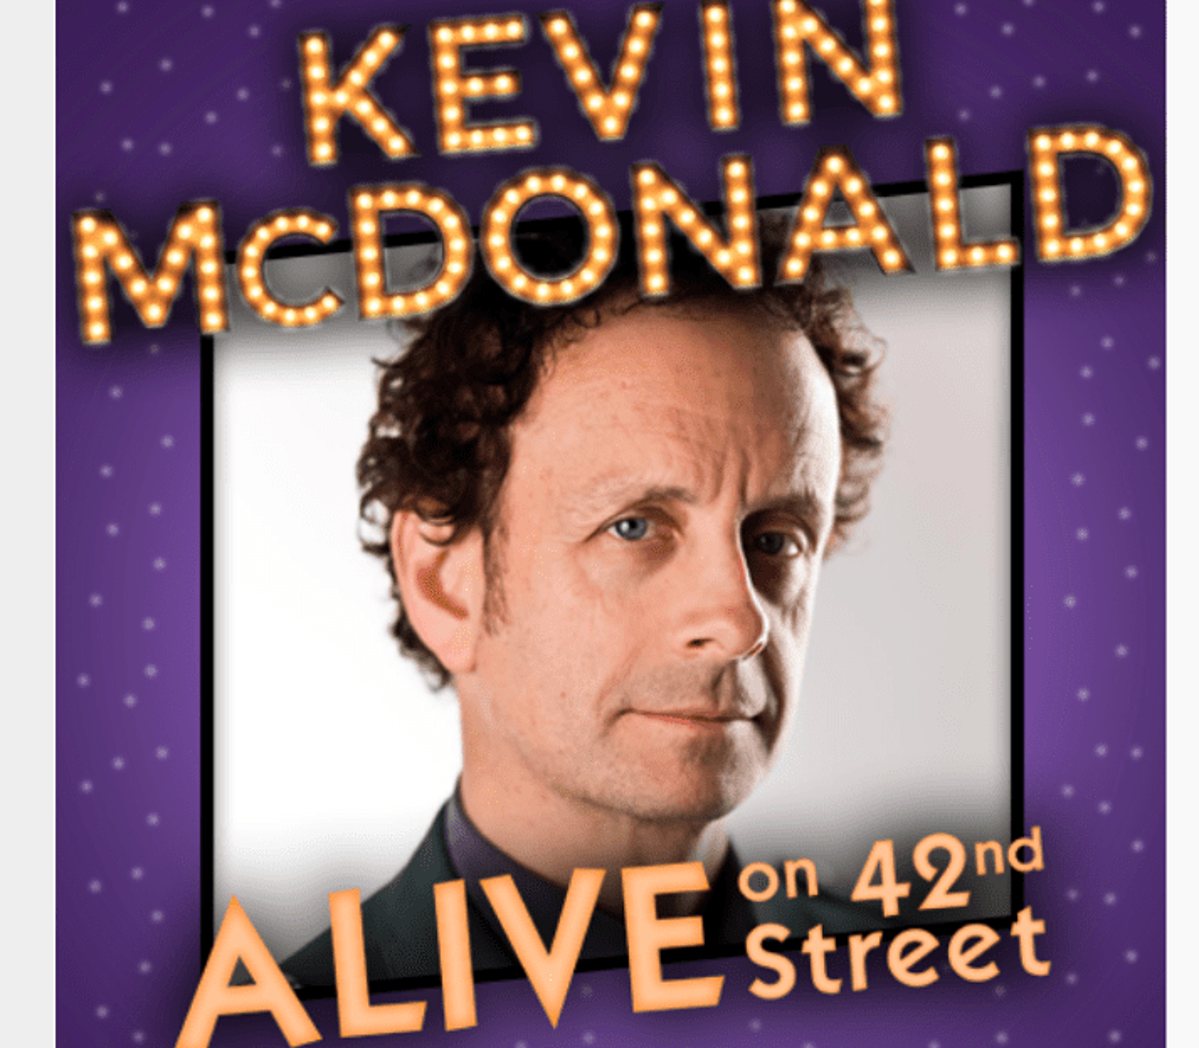 Kevin McDonald (Kids in the Hall) is 'ALIVE on 42nd Street' in August